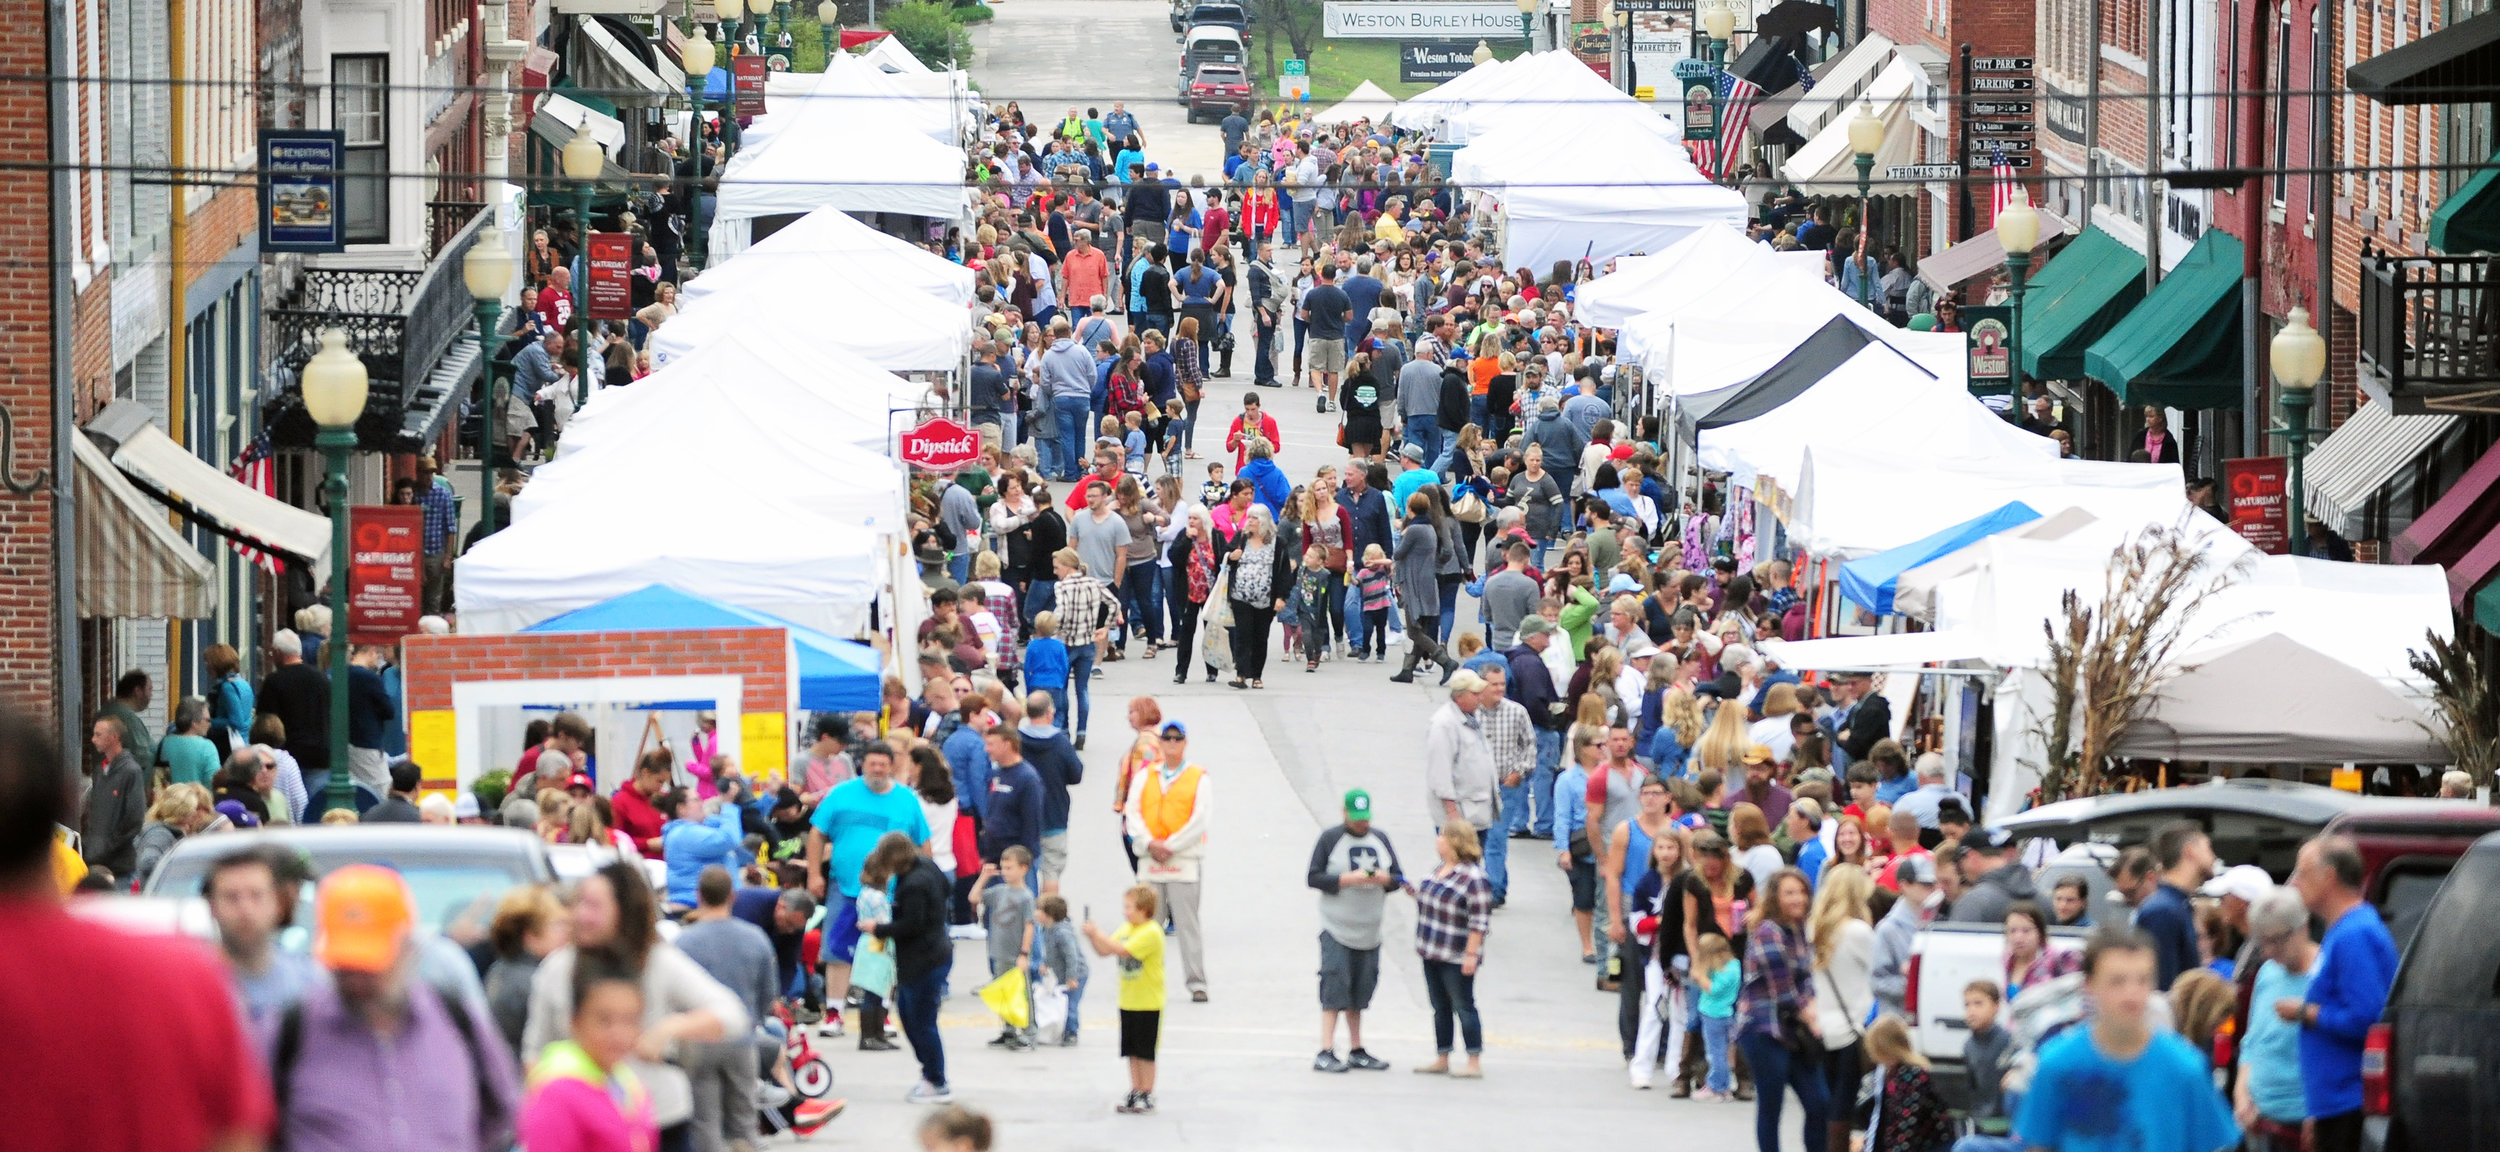 NICK INGRAM/Citizen photo People fill up Main Street in downtown Weston, Mo. following the annual Applefest parade Saturday, Oct. 1. The festival drew in an estimated 35,000 people this past weekend.